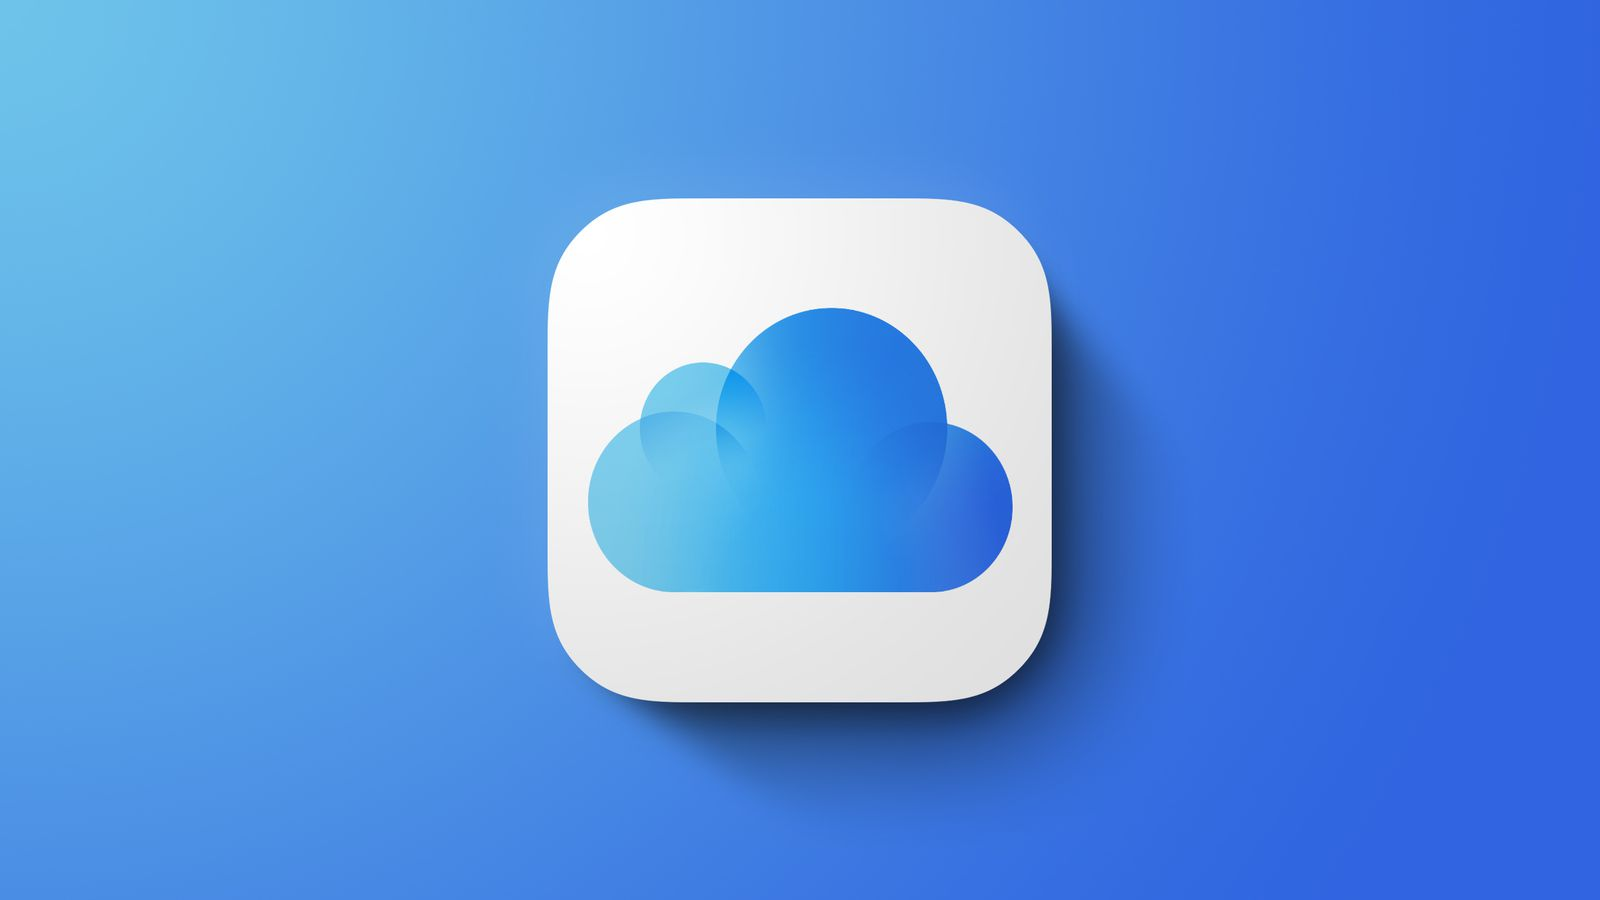 iCloud Mail Gmail Alternative Email Service